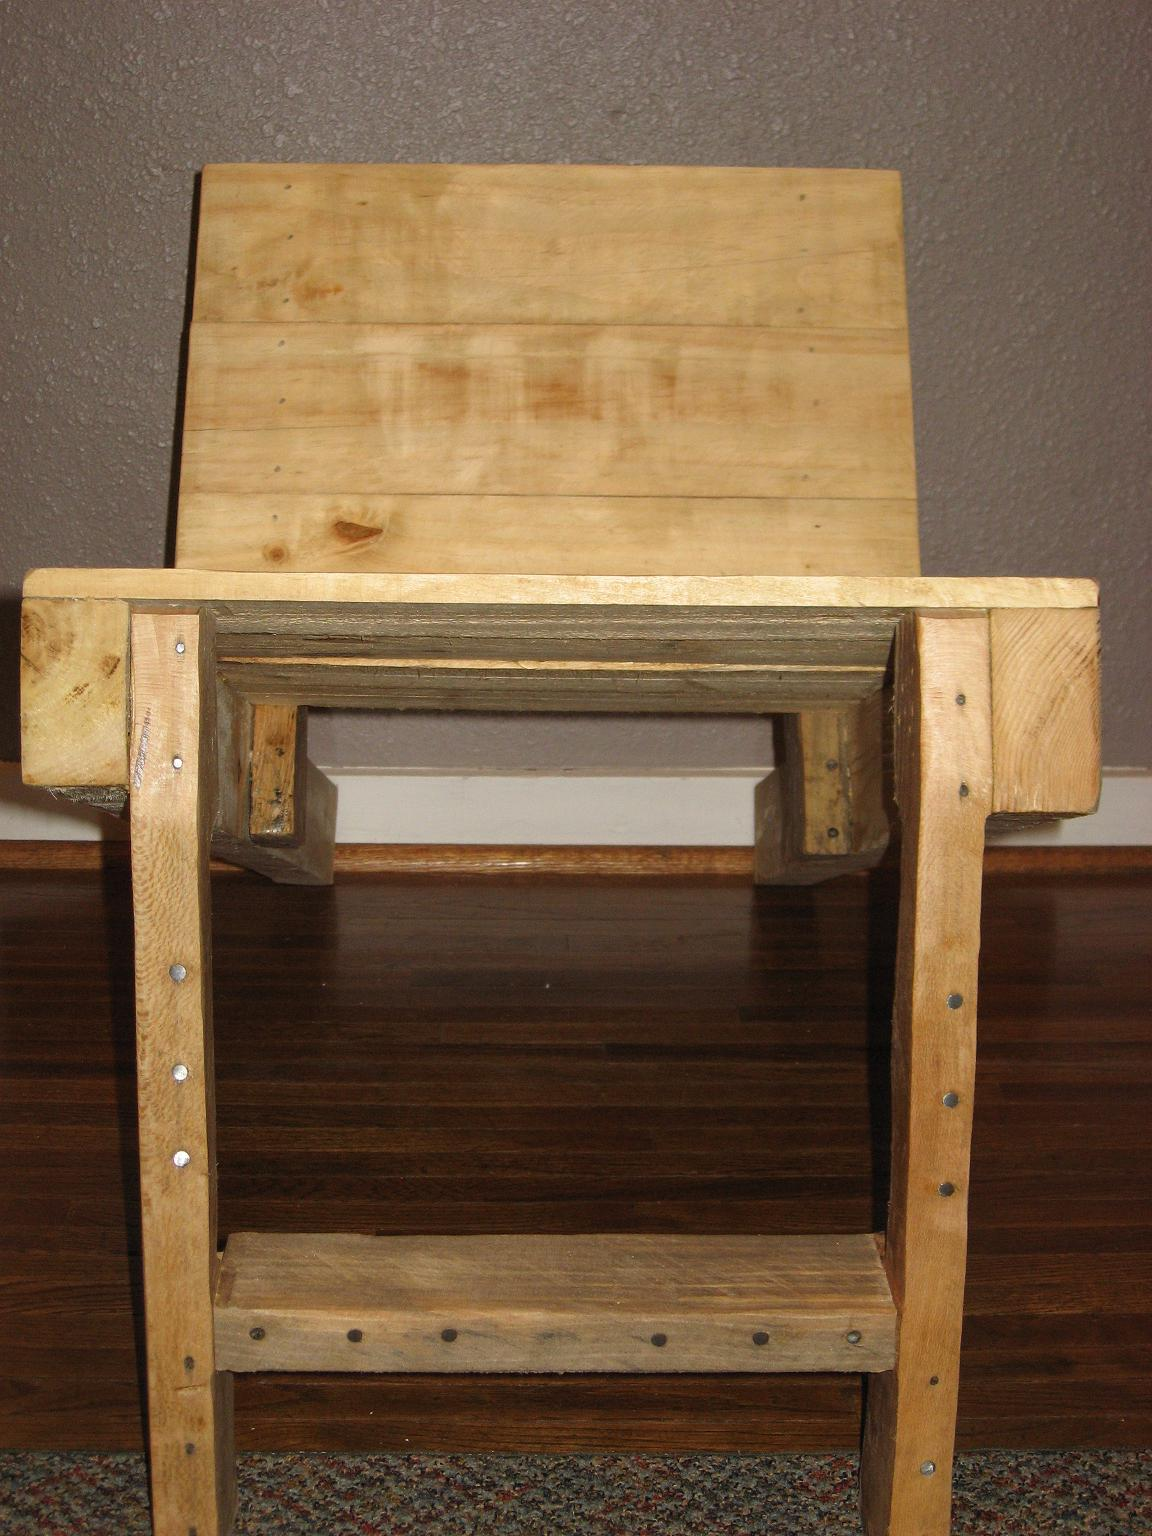 Furniture From Reclaimed Materials Repurposed Pallet Now